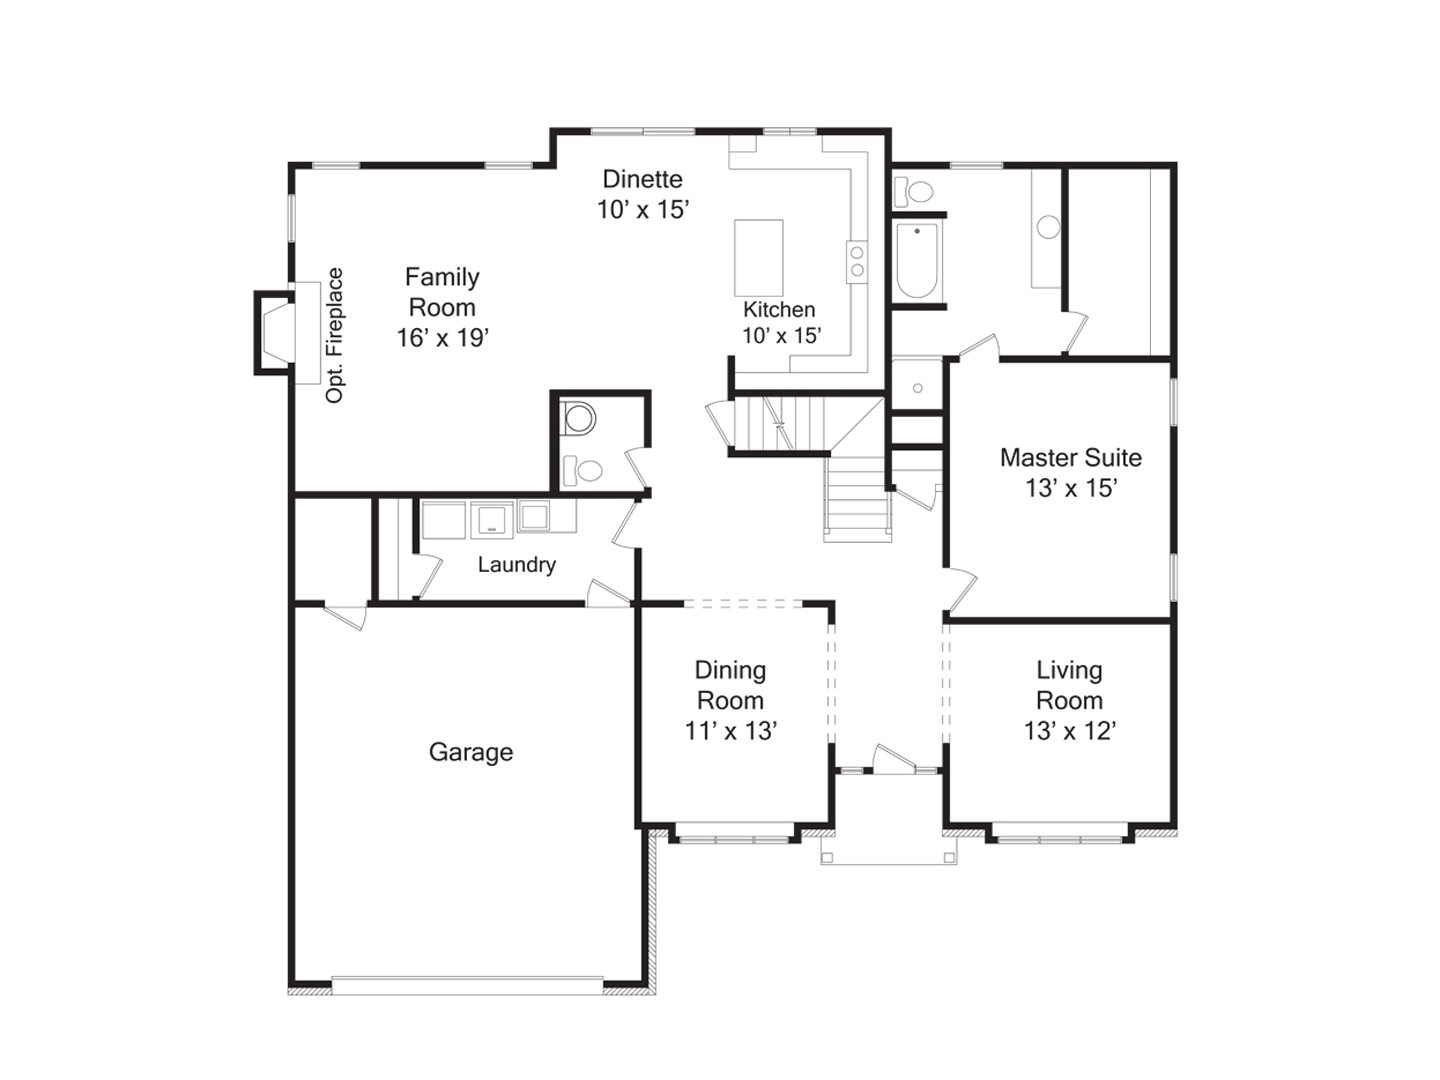 Best ideas about Family Room Addition Floor Plans . Save or Pin Family Room Addition Plans Room Addition Floor Plans e Now.